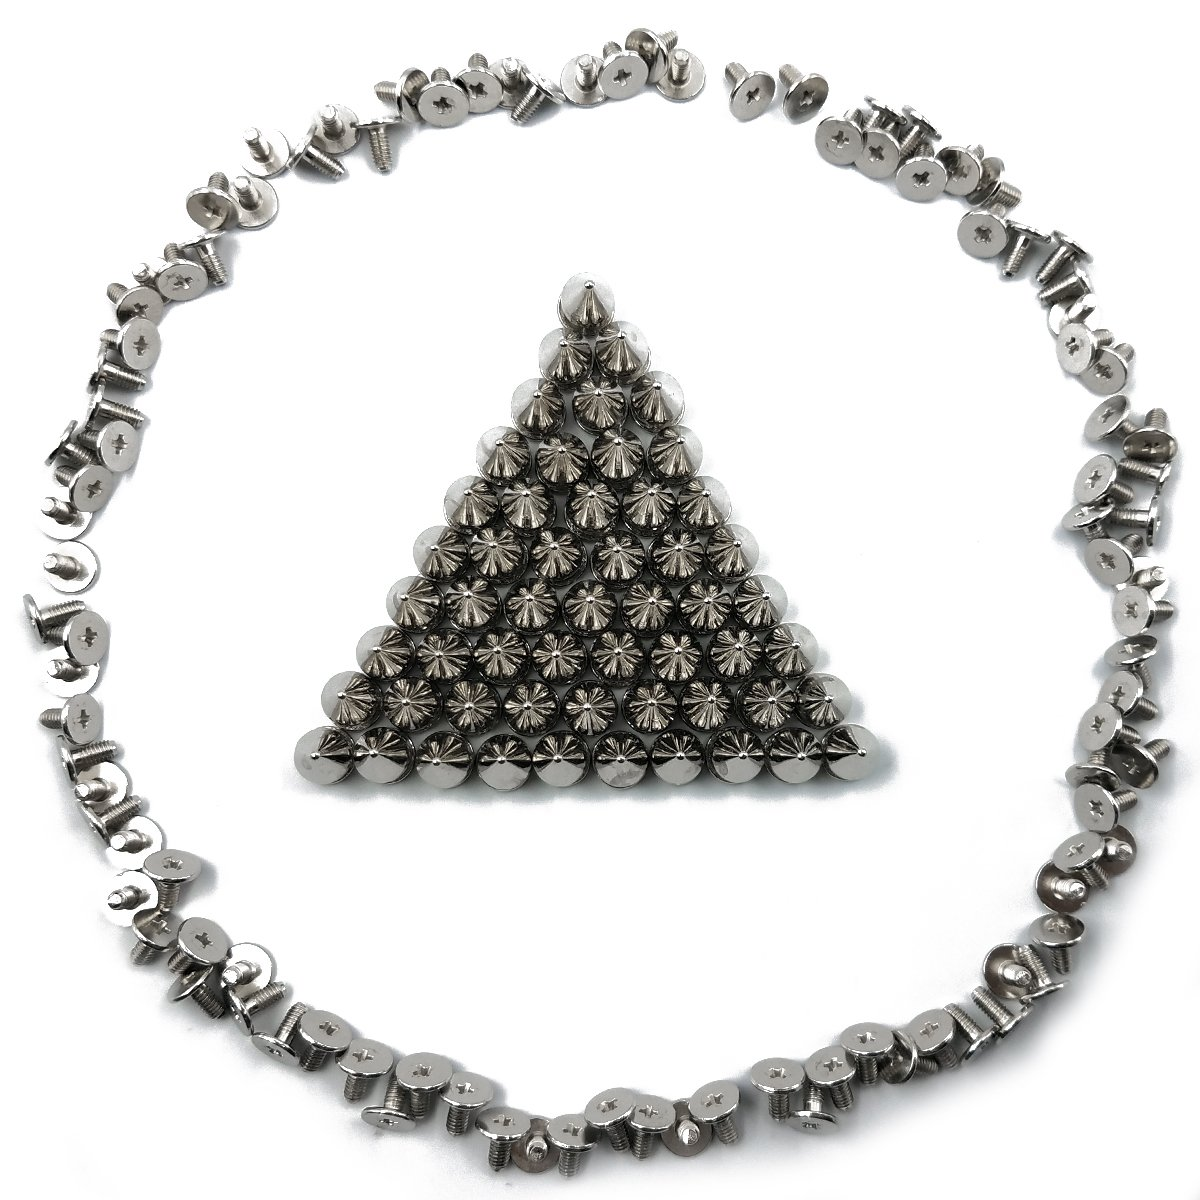 100sets Silver SamuRita Metal Style Mushroom Tree Spikes Leather Studs and Rivets for Crafts DIY Designs